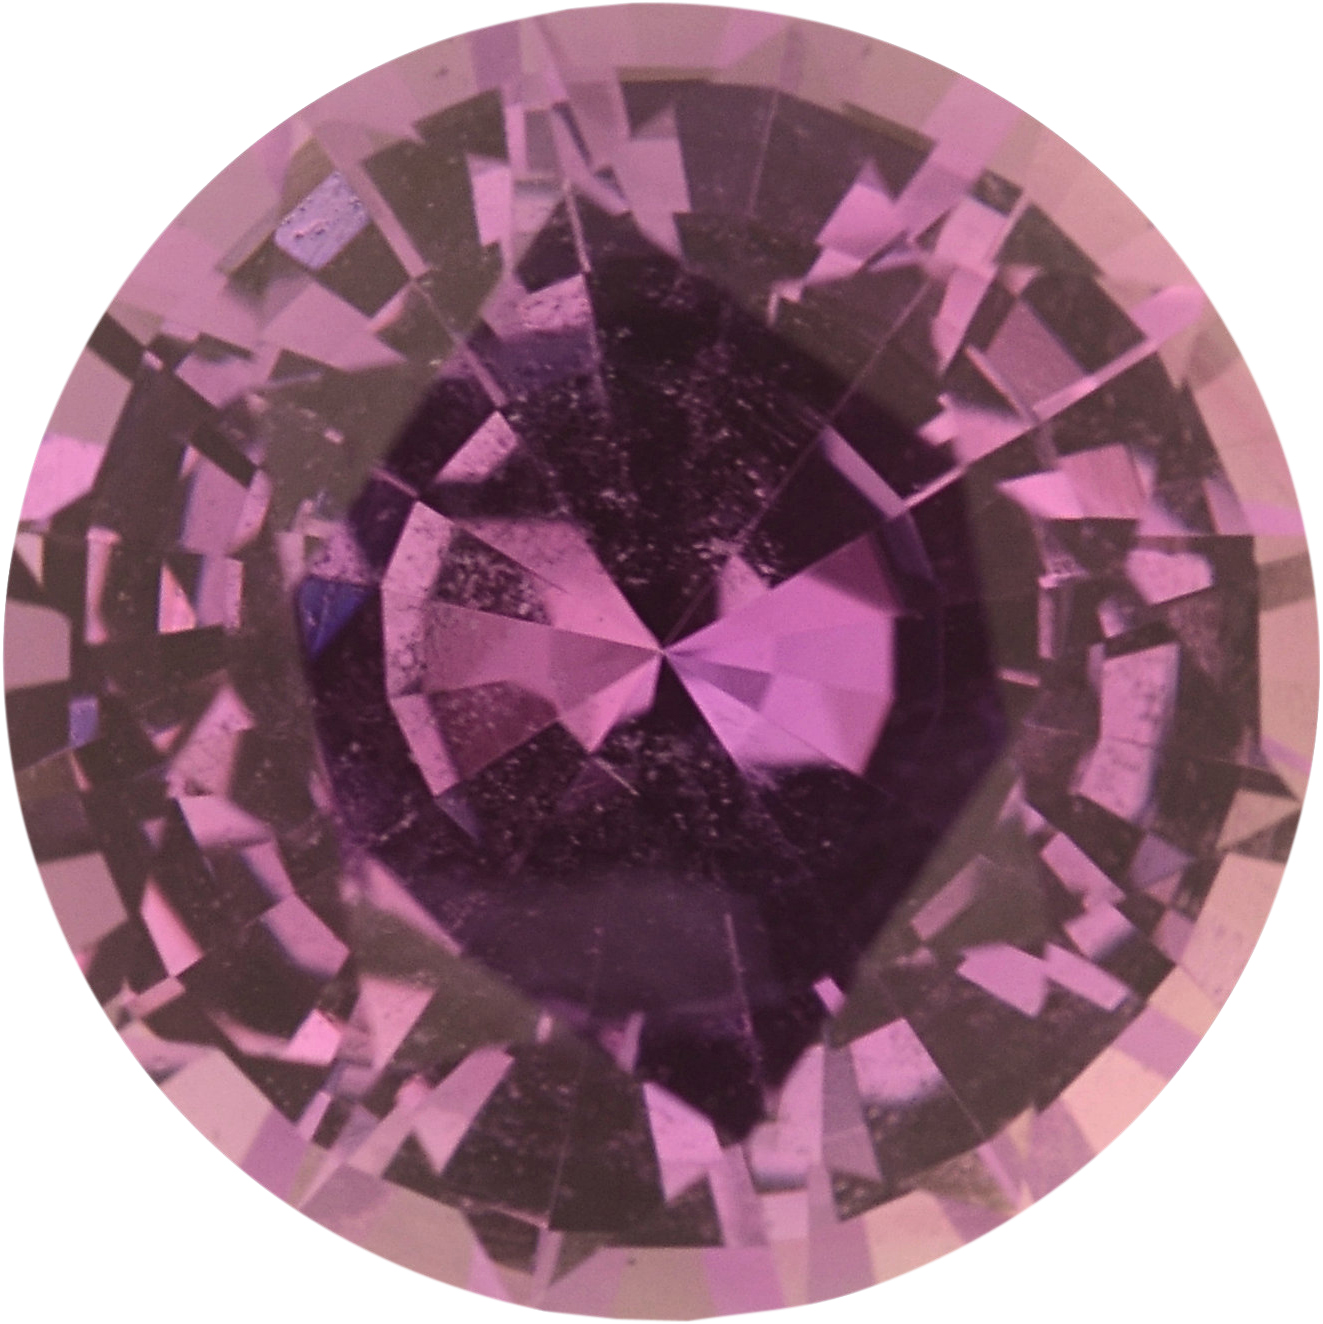 1.33 carats Purple Loose Sapphire Gemstone in Round Cut, 6.61 mm